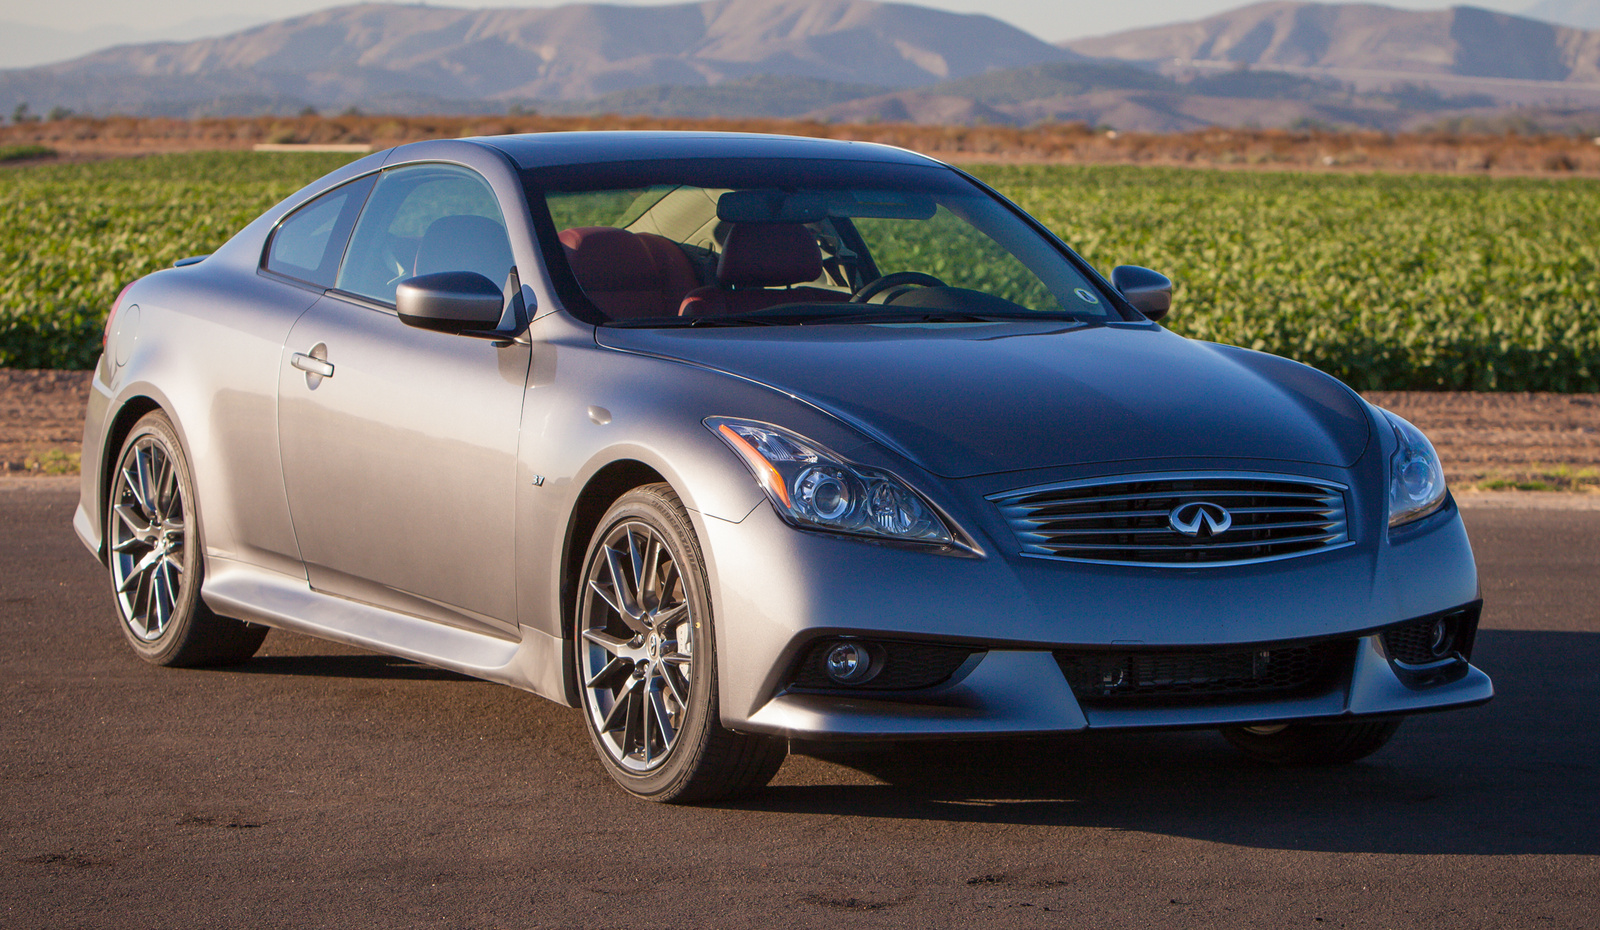 Home / Research / Infiniti / Q60 IPL / 2014